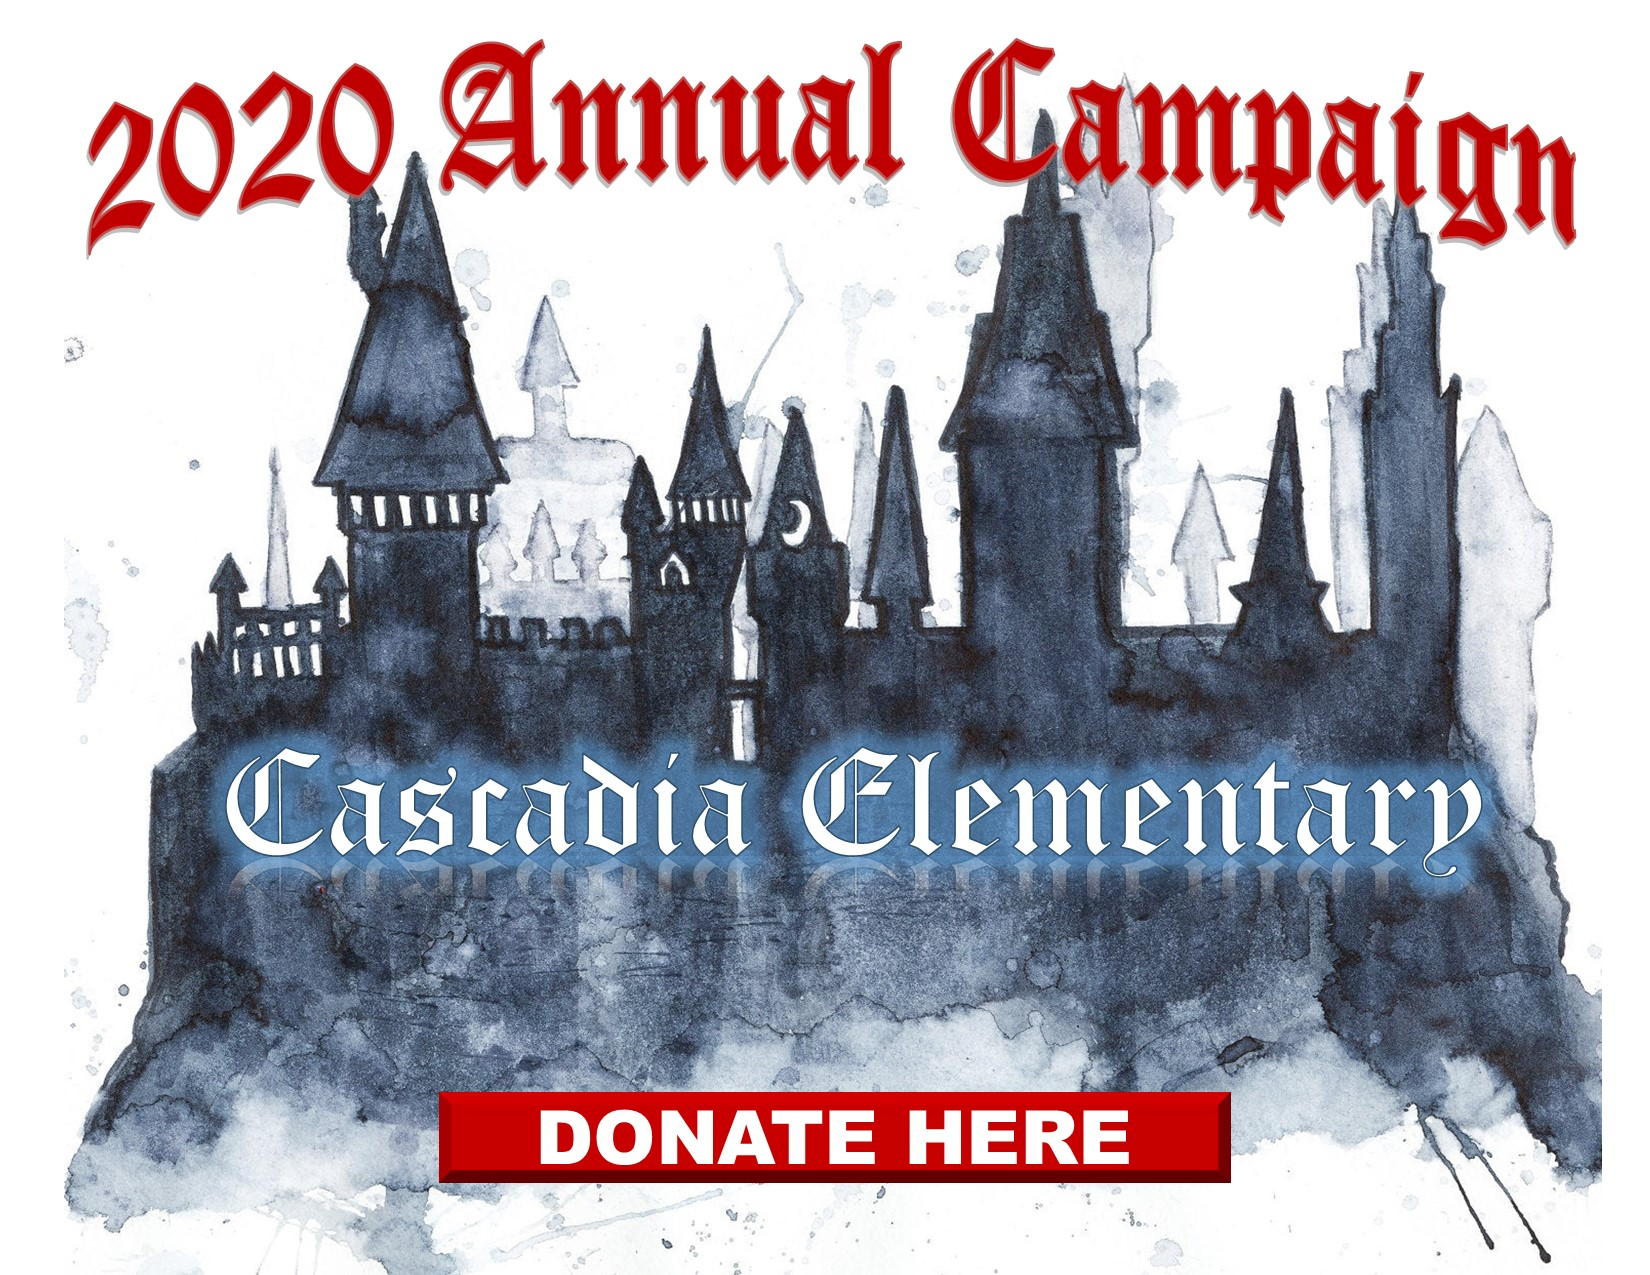 2020 Annual Campaign Donate Here button, with a picture of a castle